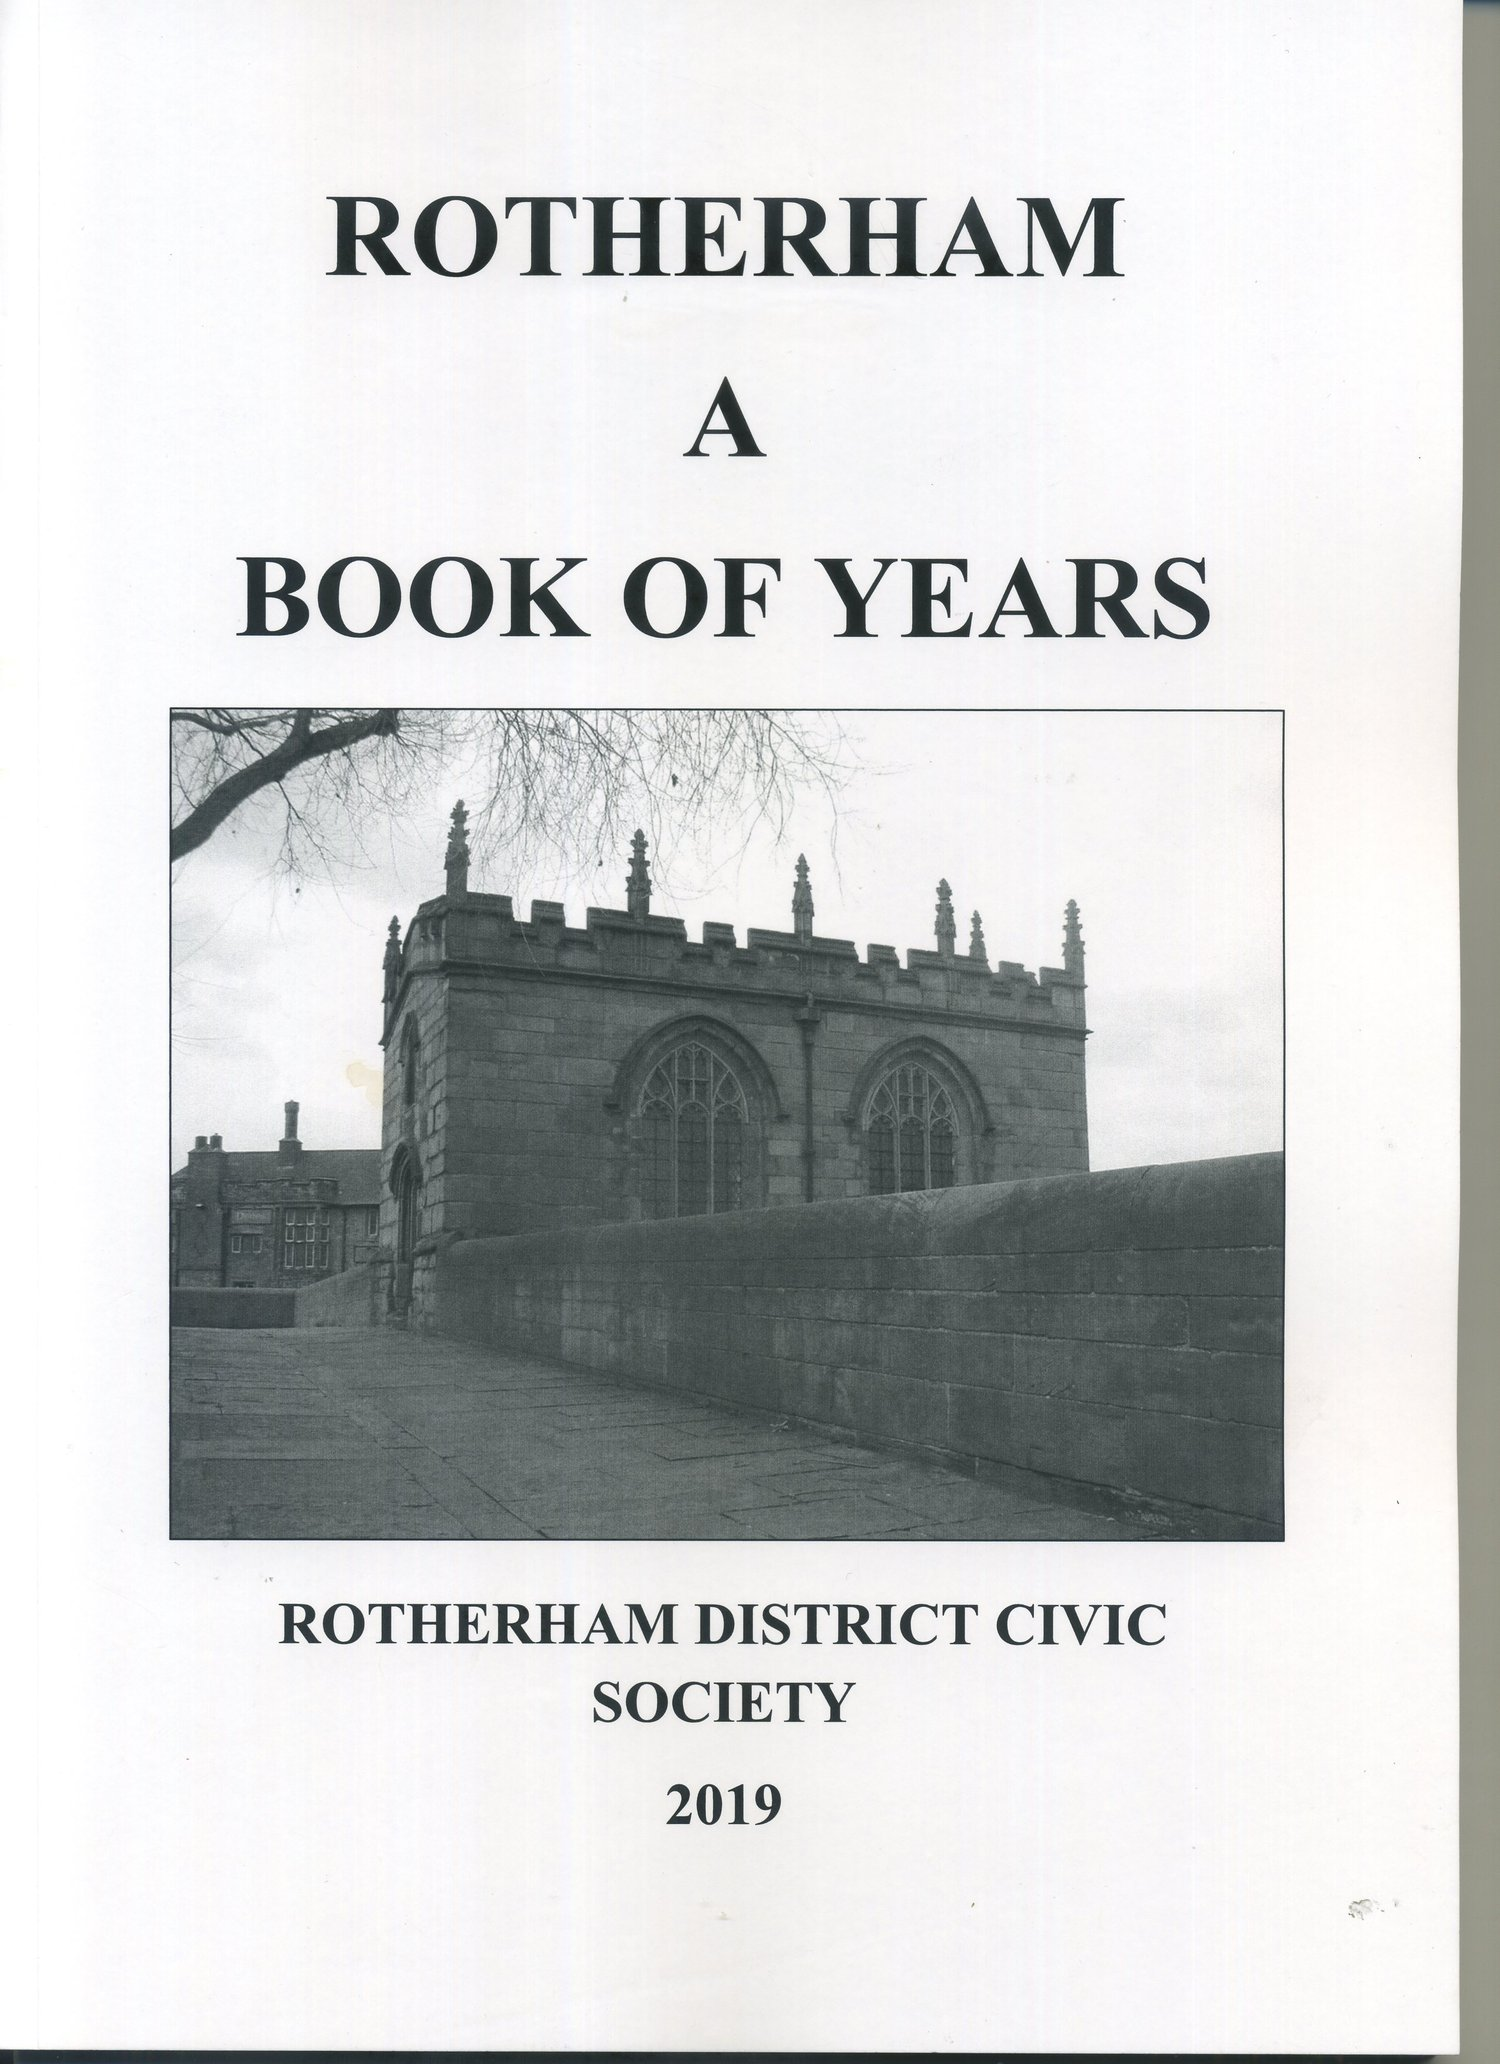 Rotherham District Civic Society Gallery Image 8